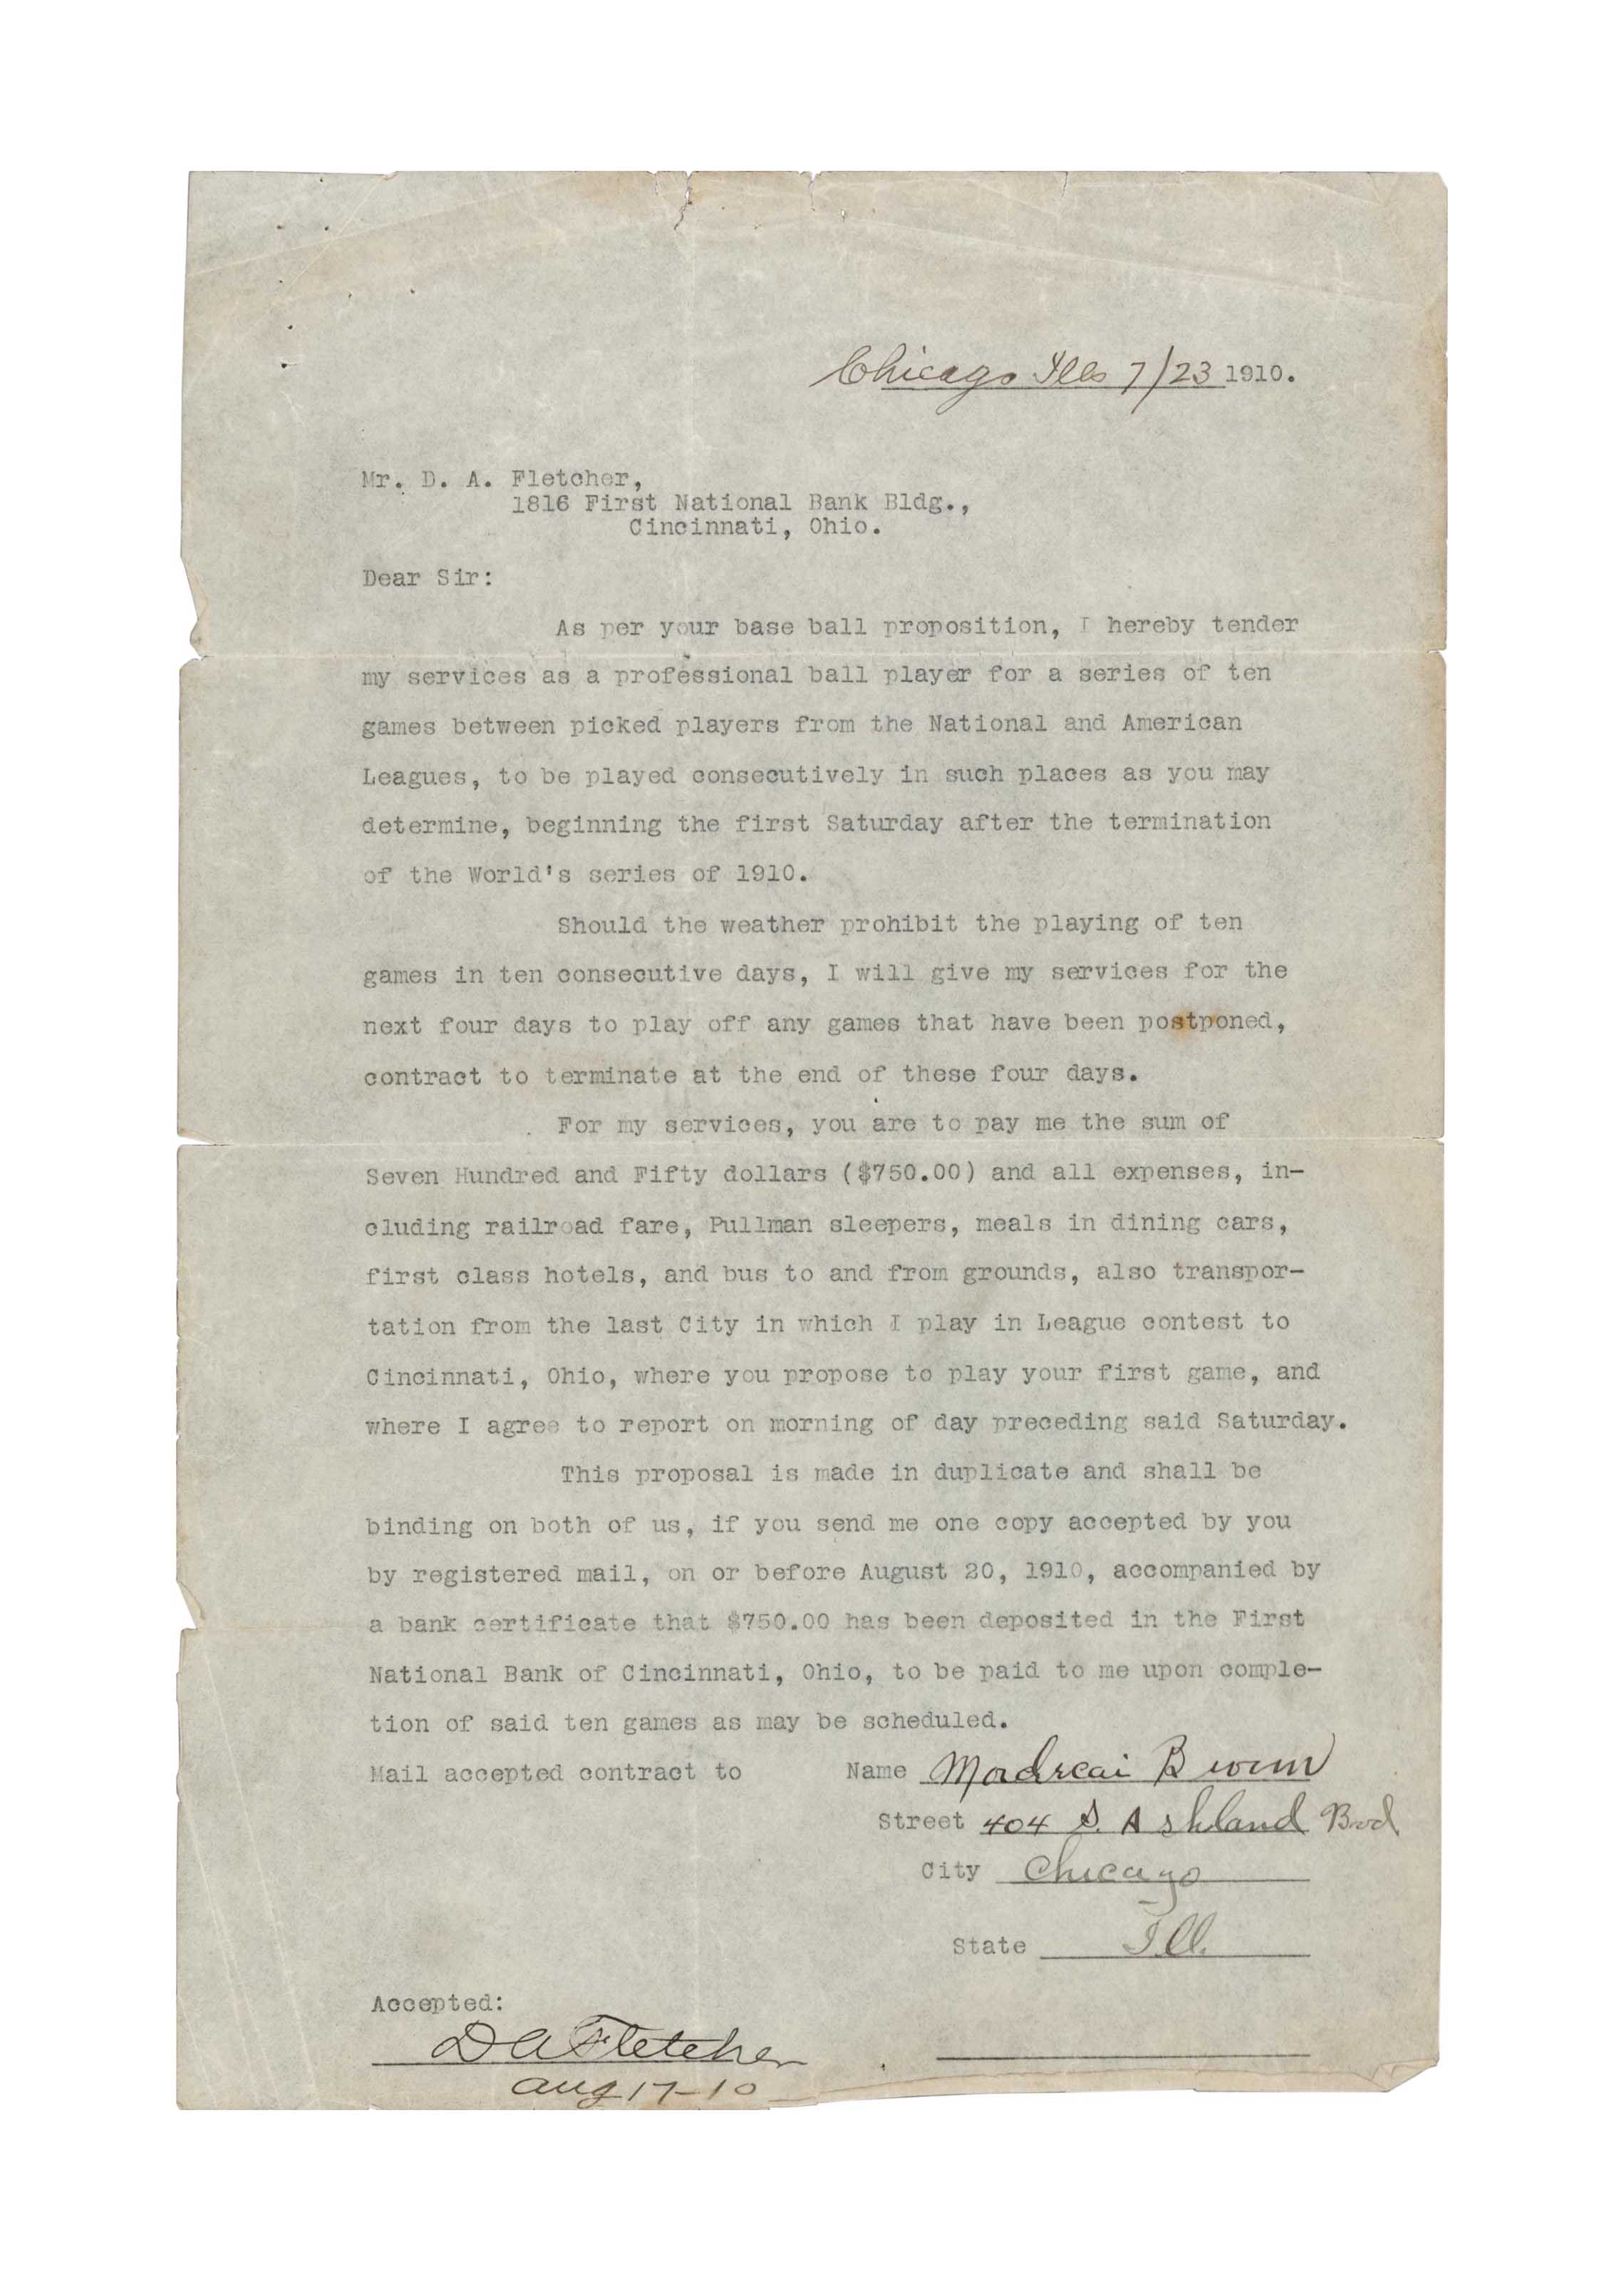 MORDECAI BROWN SIGNED CONTRACT